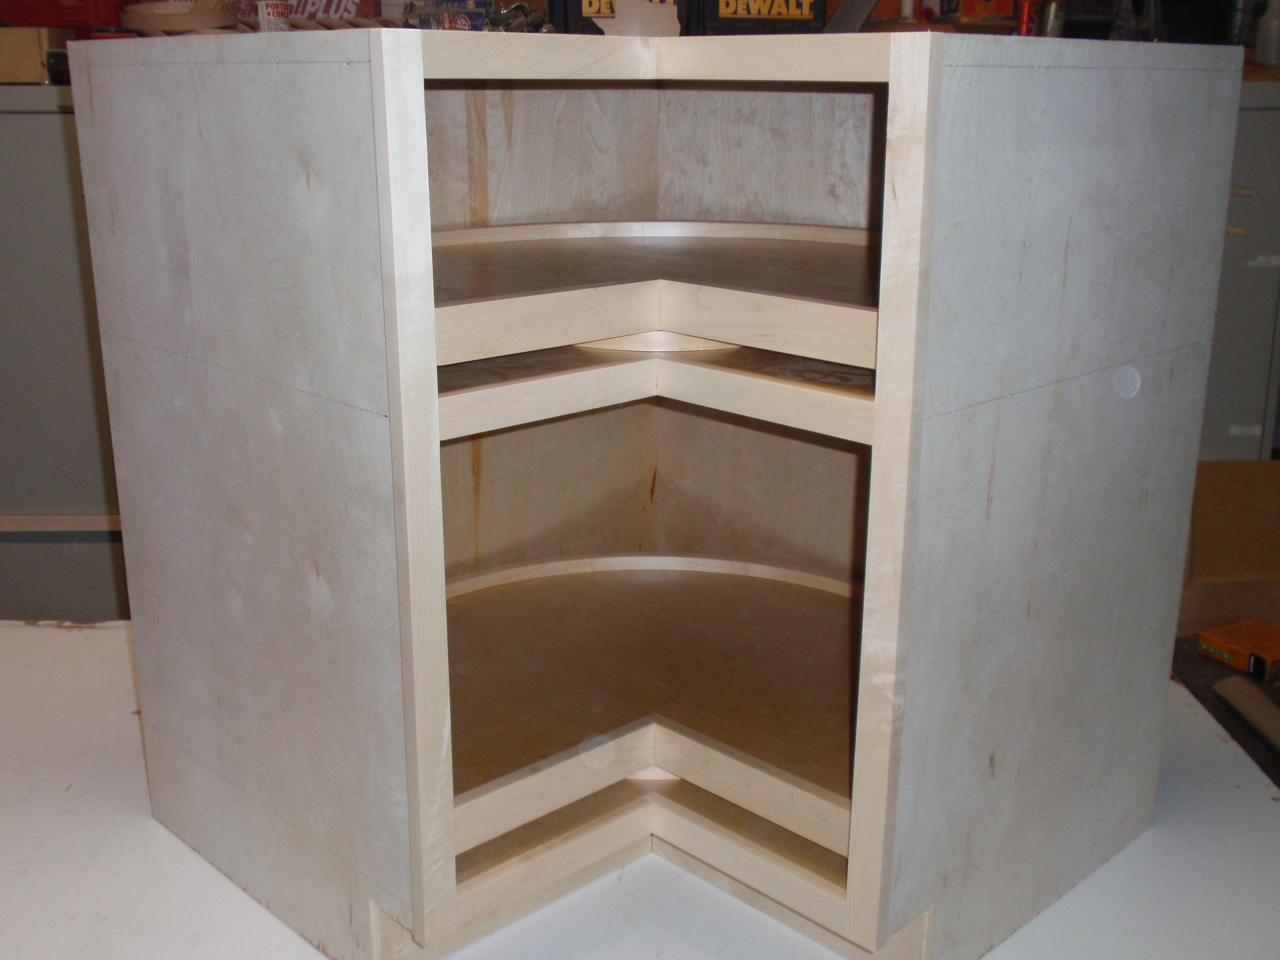 Fully assembled easy reach lazy susan with 1000 pound load rating per shelf